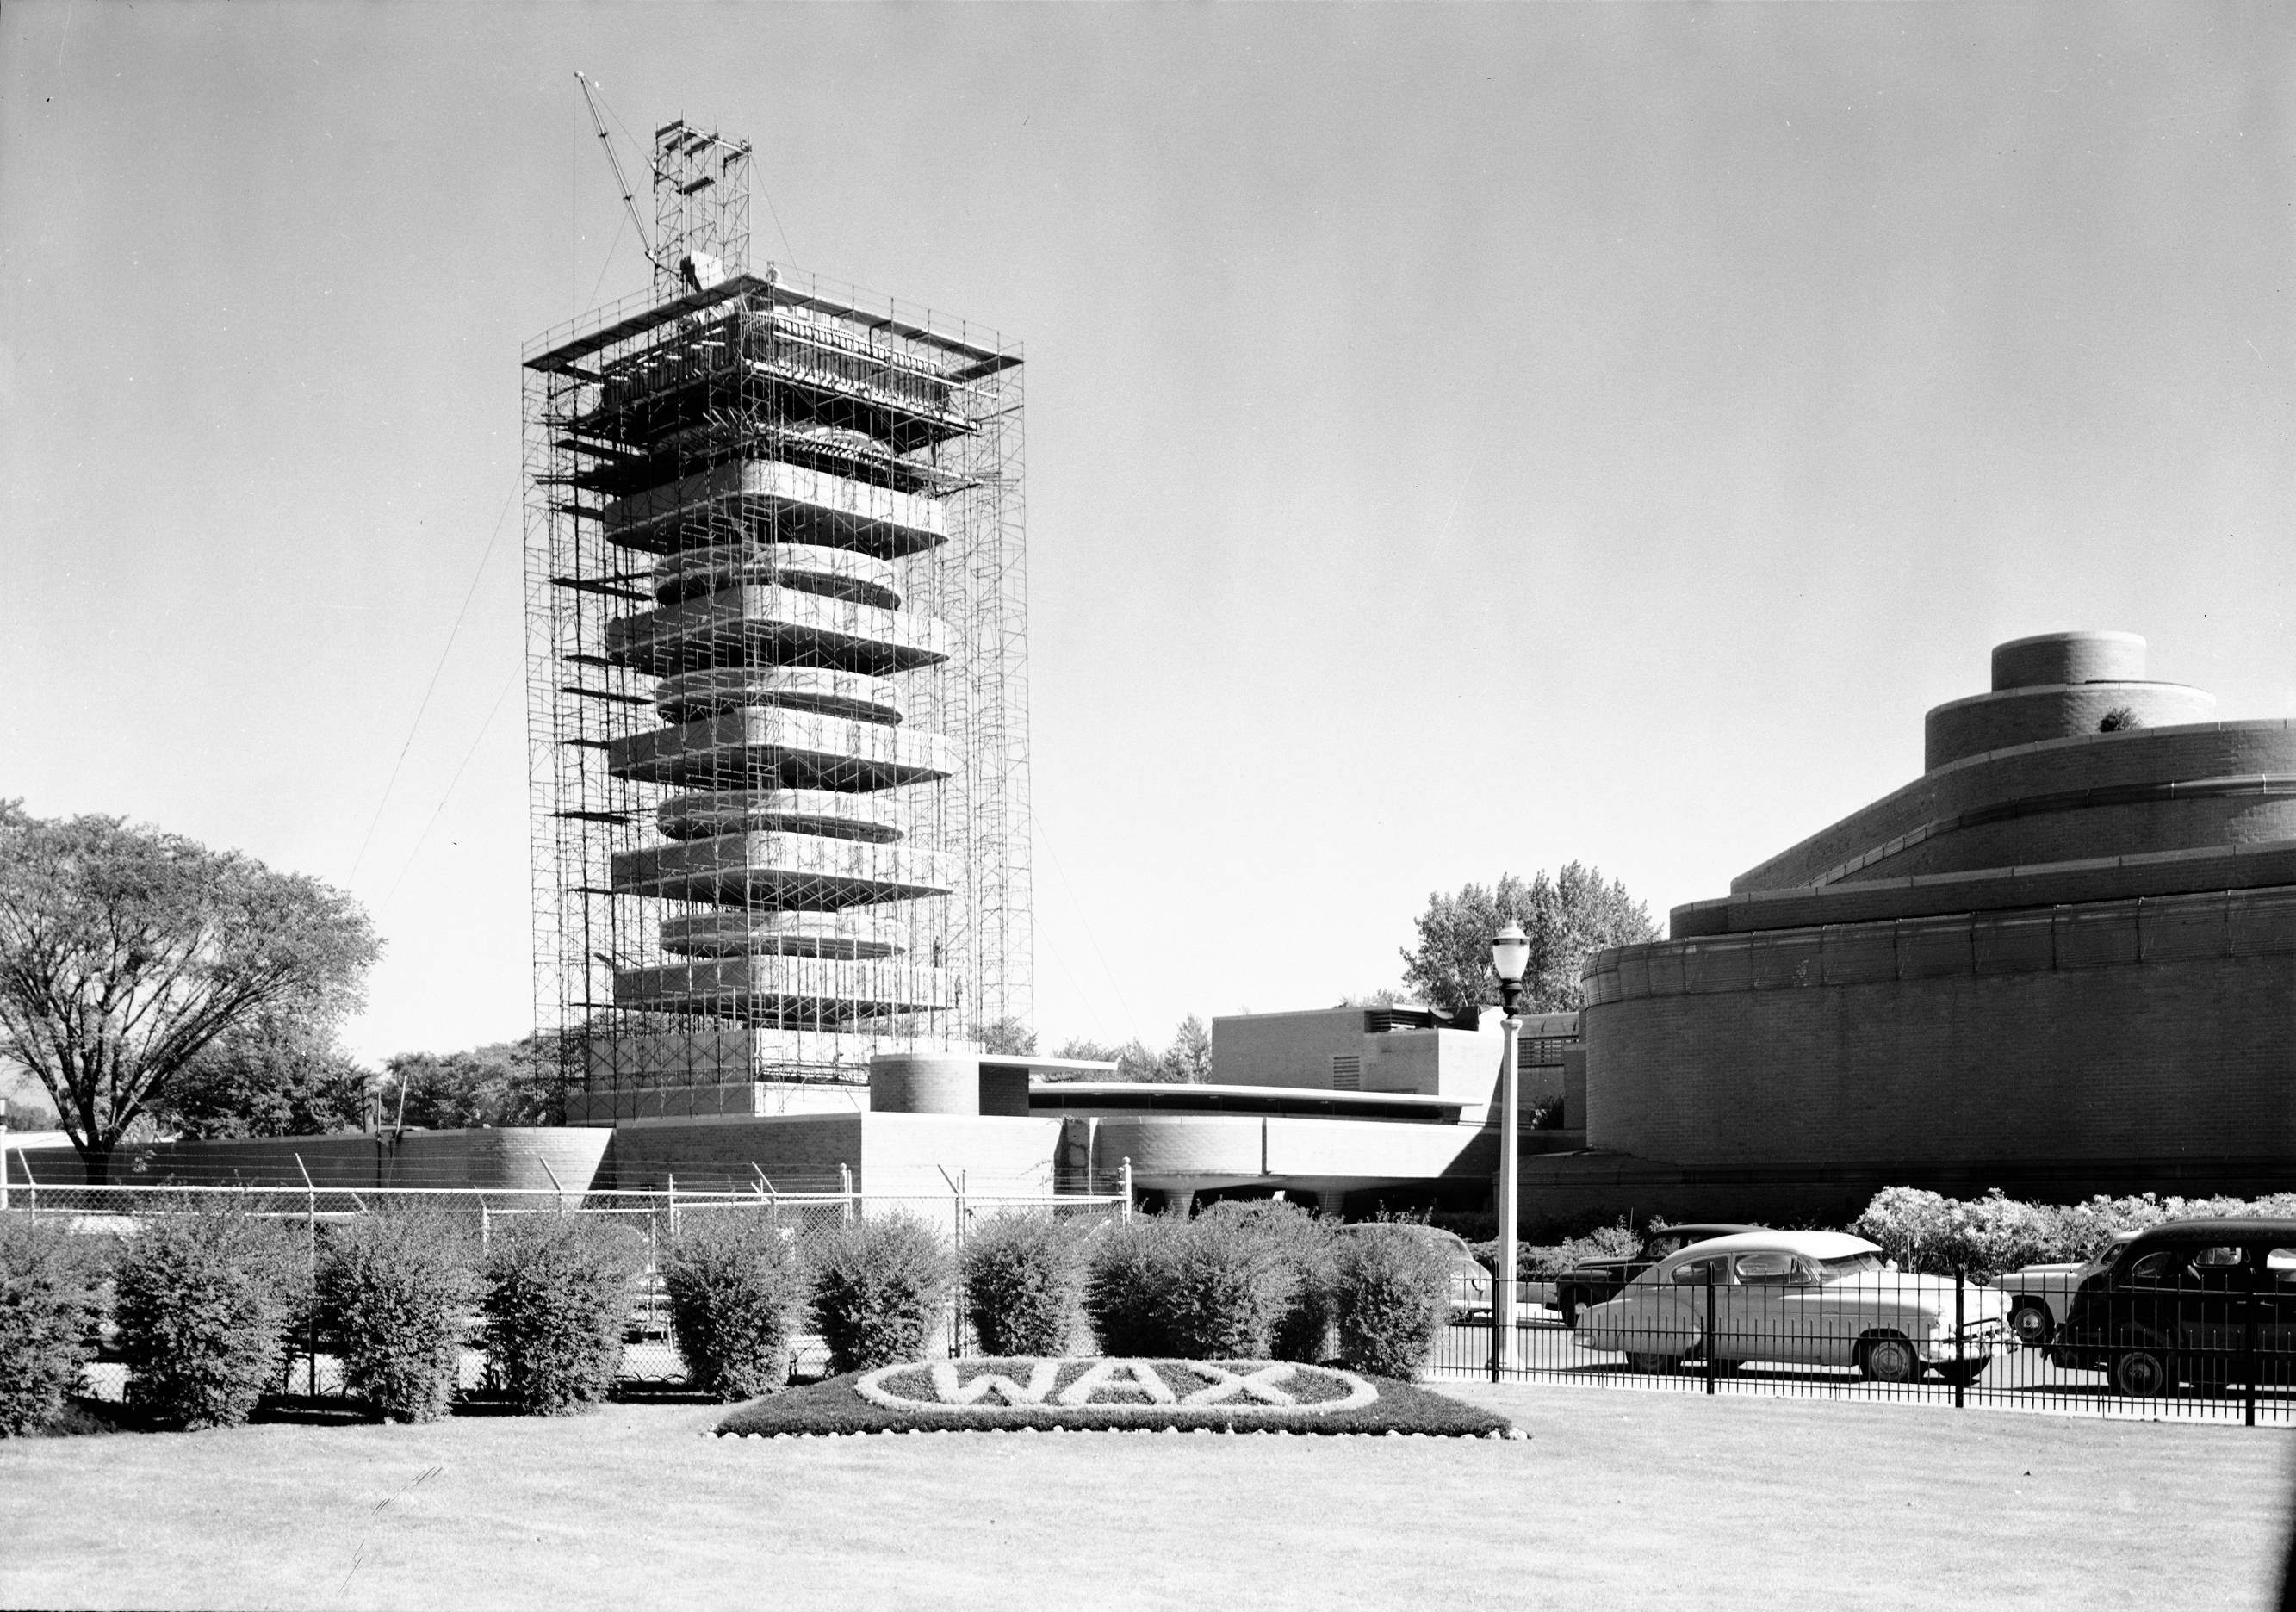 The Research Tower designed by Frank Lloyd Wright for home products giant SC Johnson in Racine, Wis., opened in 1950. The company is opening the building for public tours for the first time starting May 2.